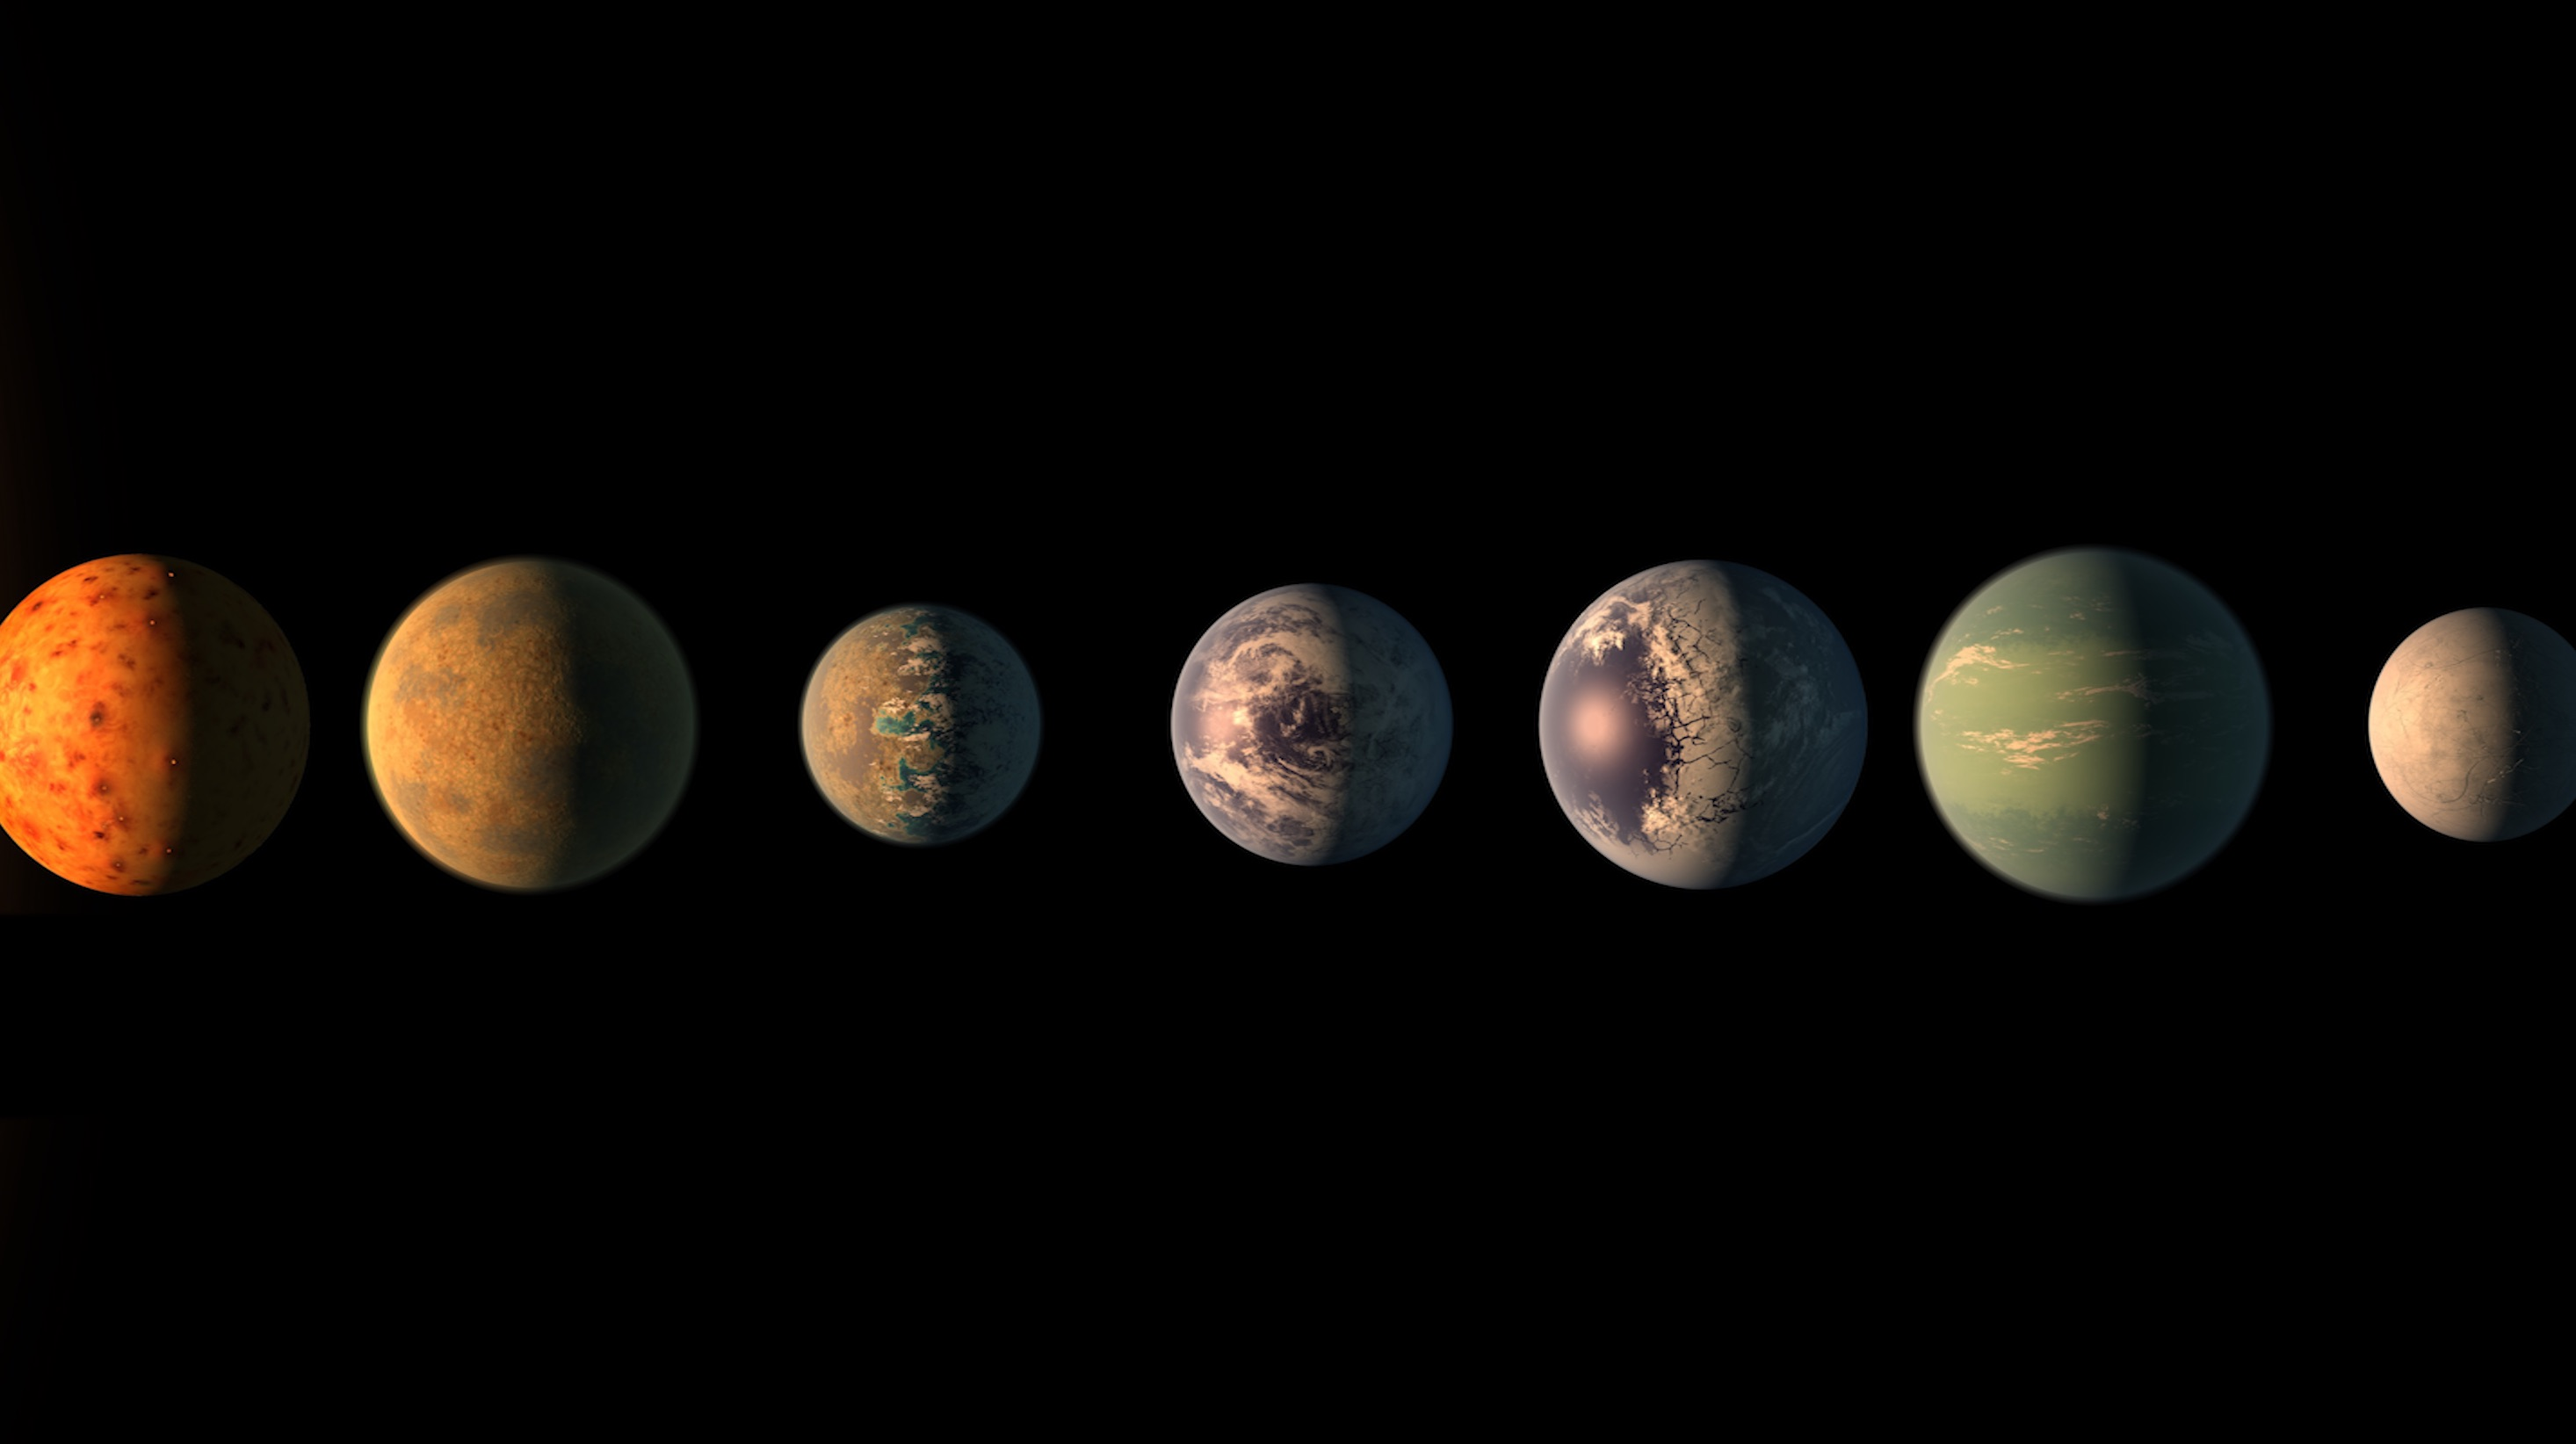 These 7 Earth-size exoplanets named after beer may be incredibly similar